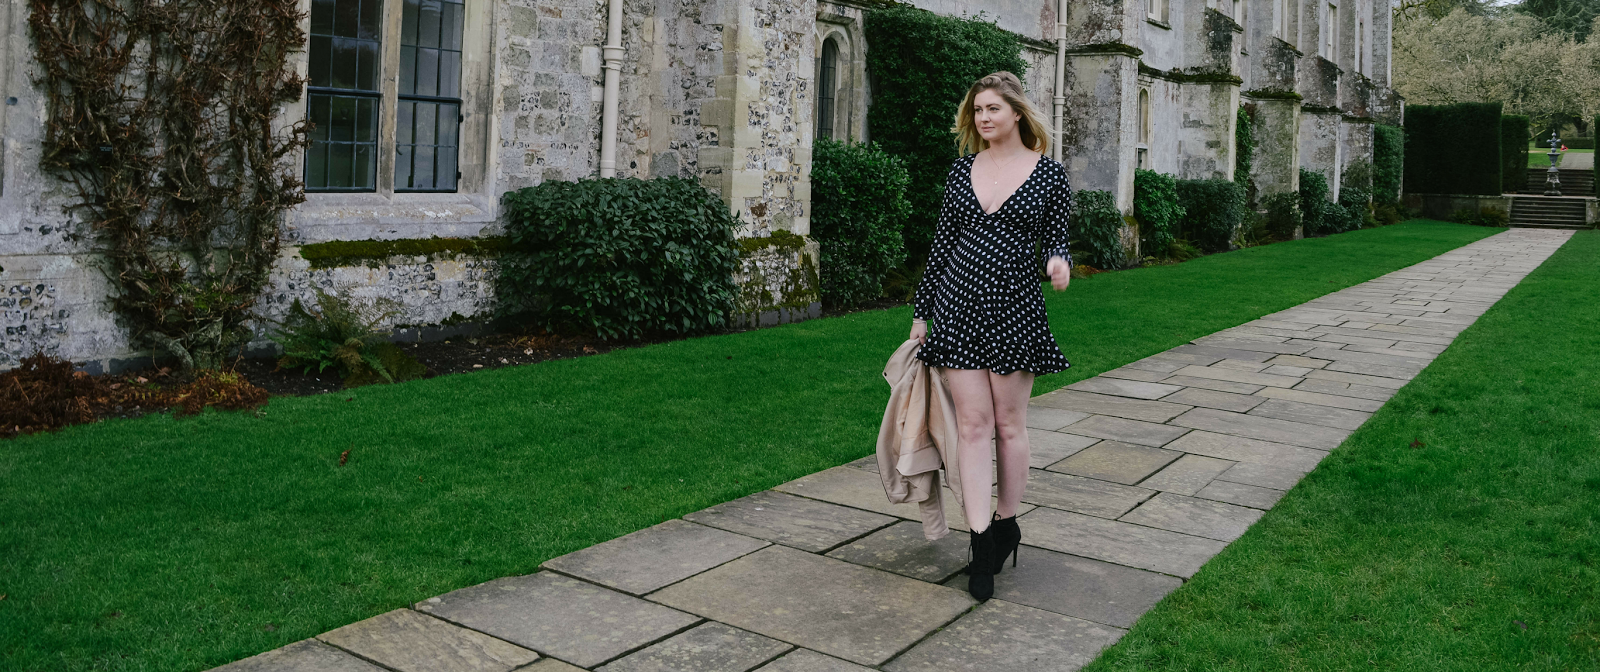 Tips On How To Be Positive In January, SheIn style dress, Dalry Rose blog, fashion blog UK